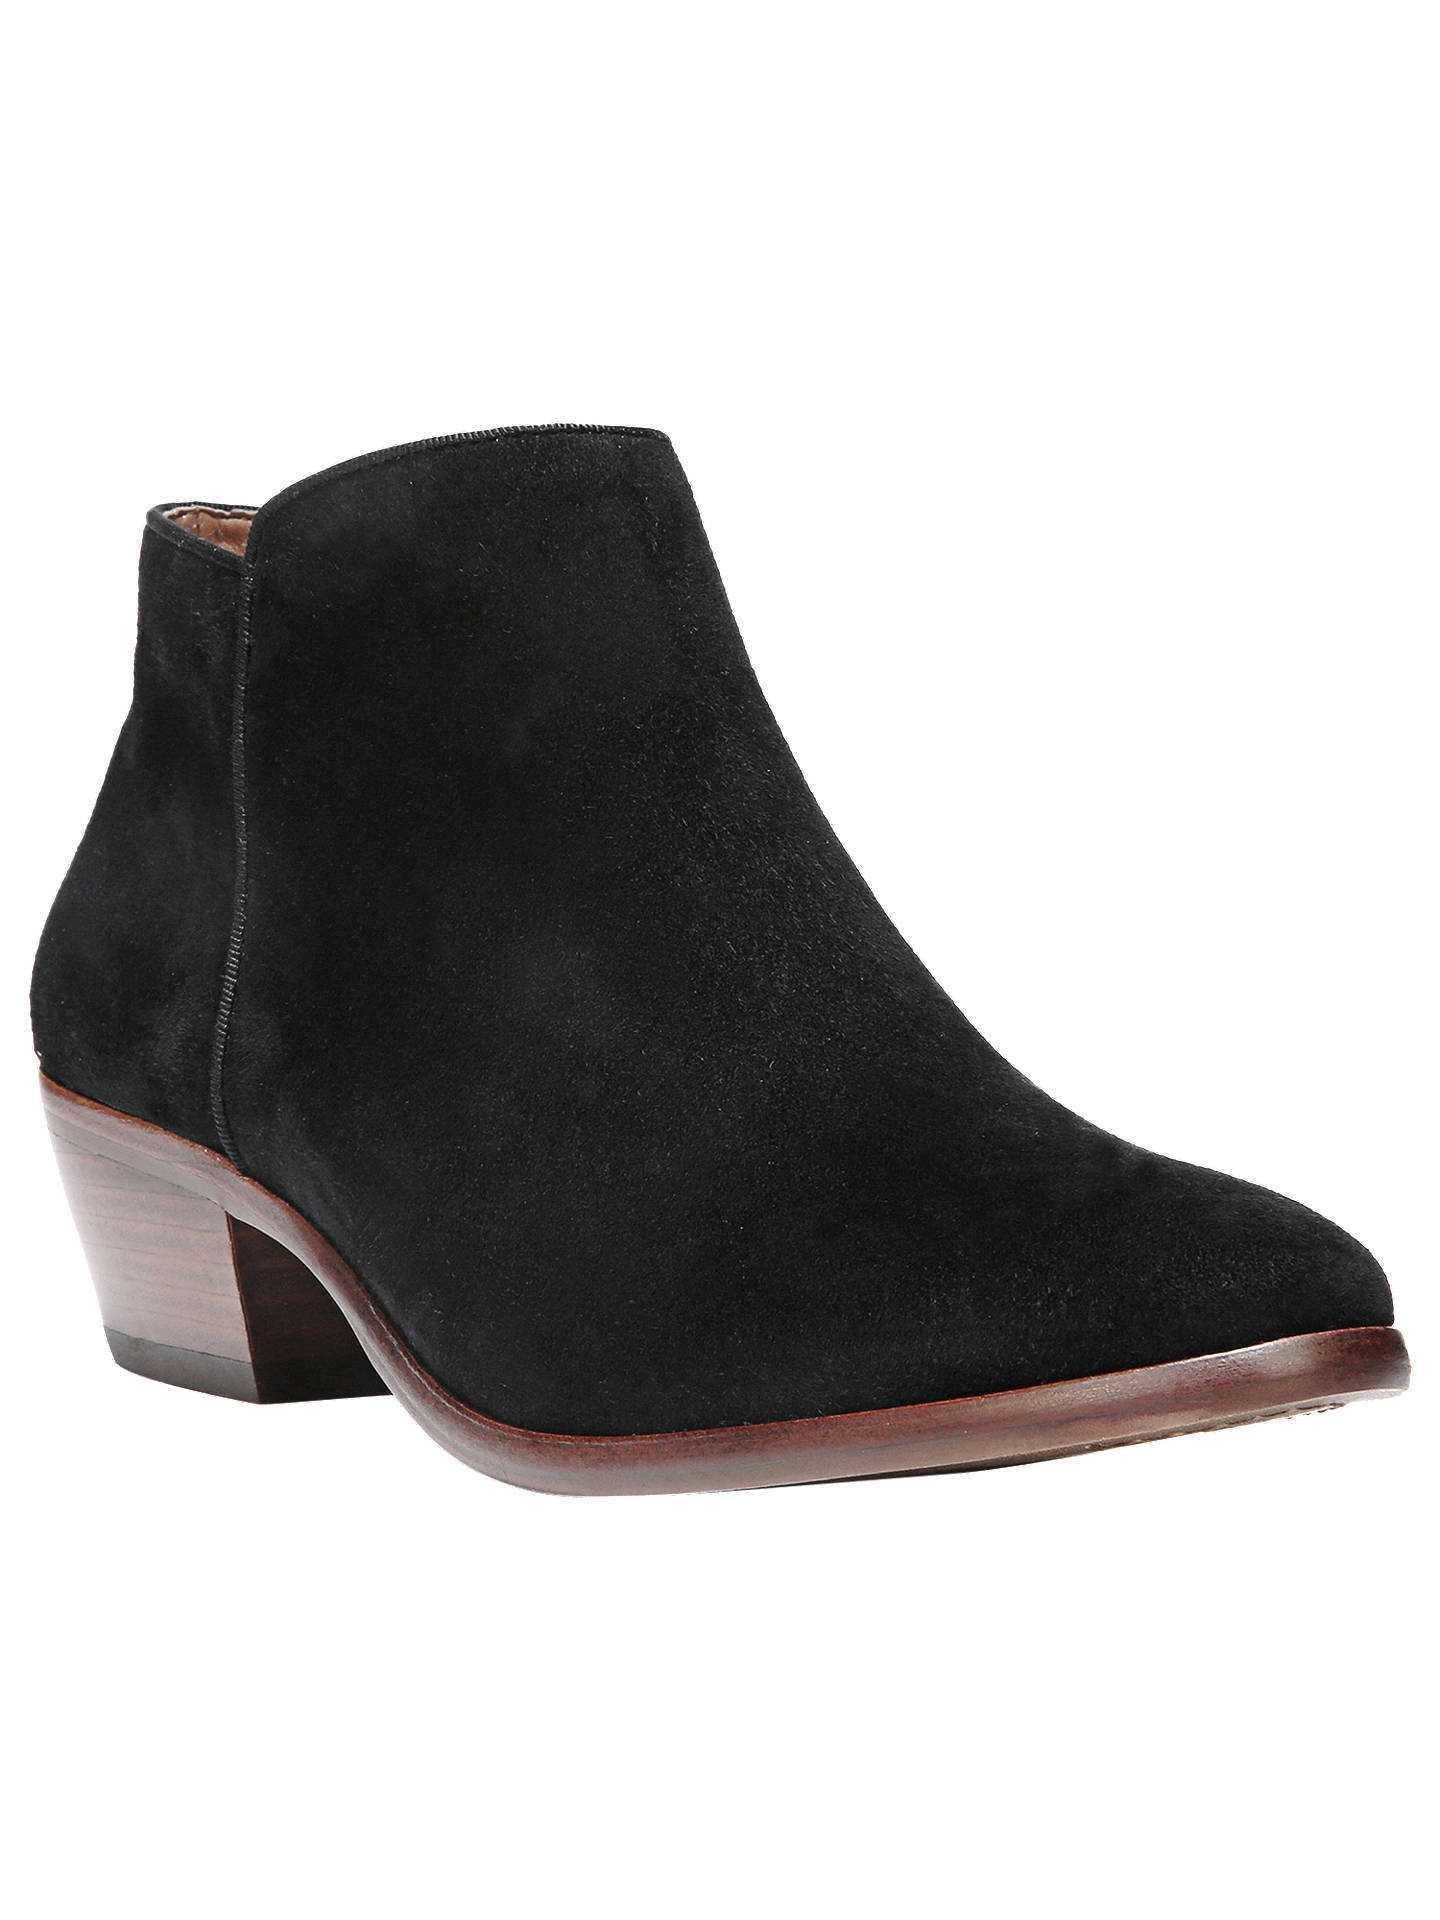 97d819a74ccb Buy Sam Edelman Petty Block Heeled Ankle Boots